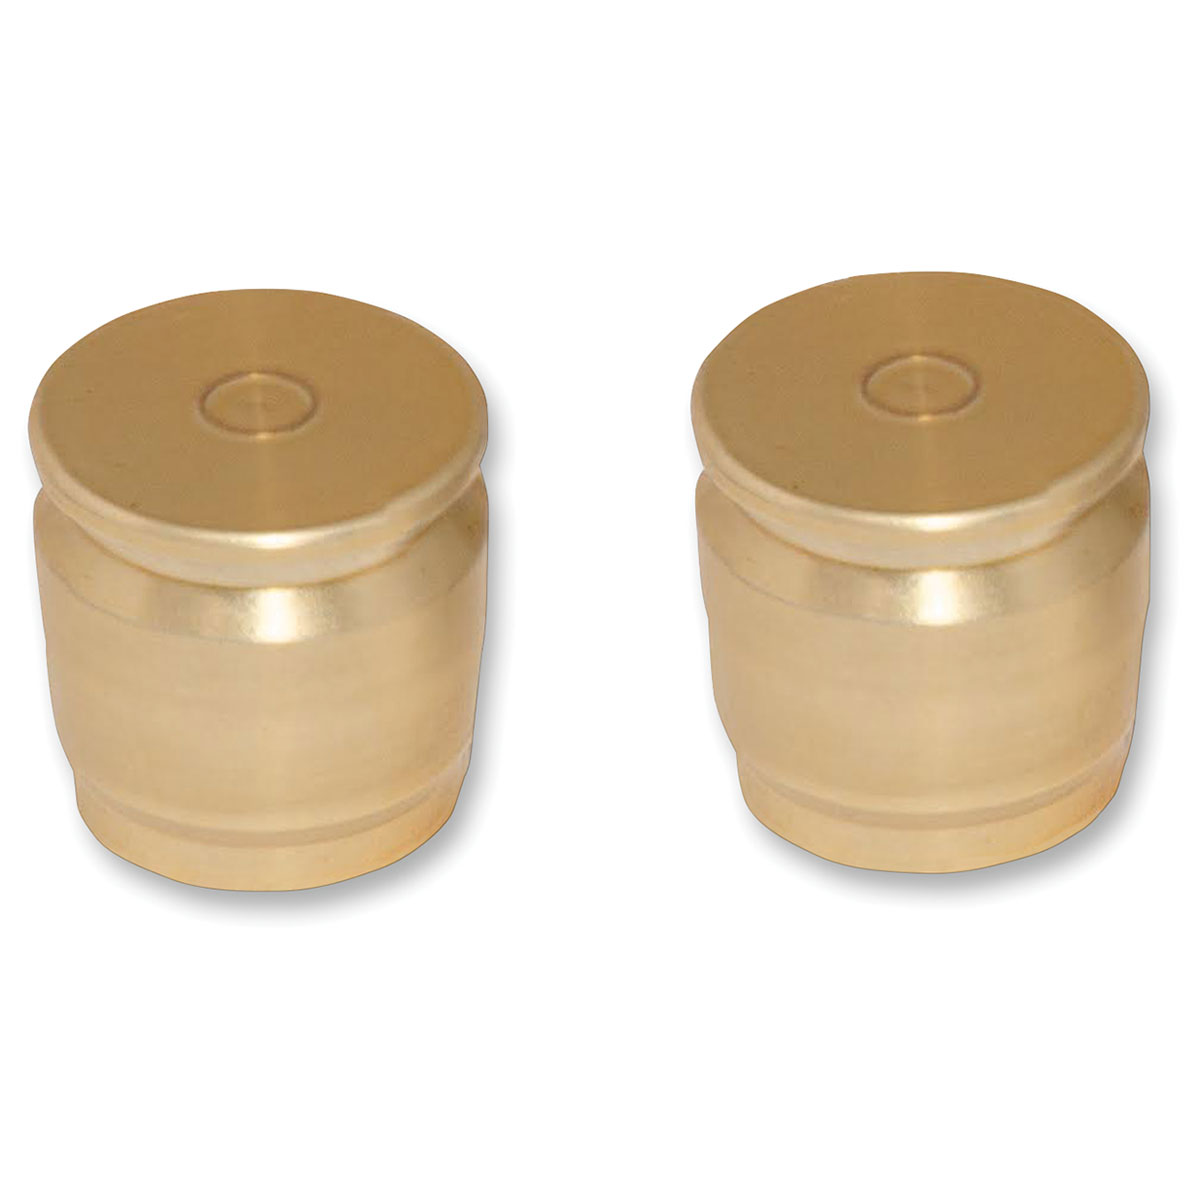 Pro Pad Docking Station Brass Shell Casing Caps